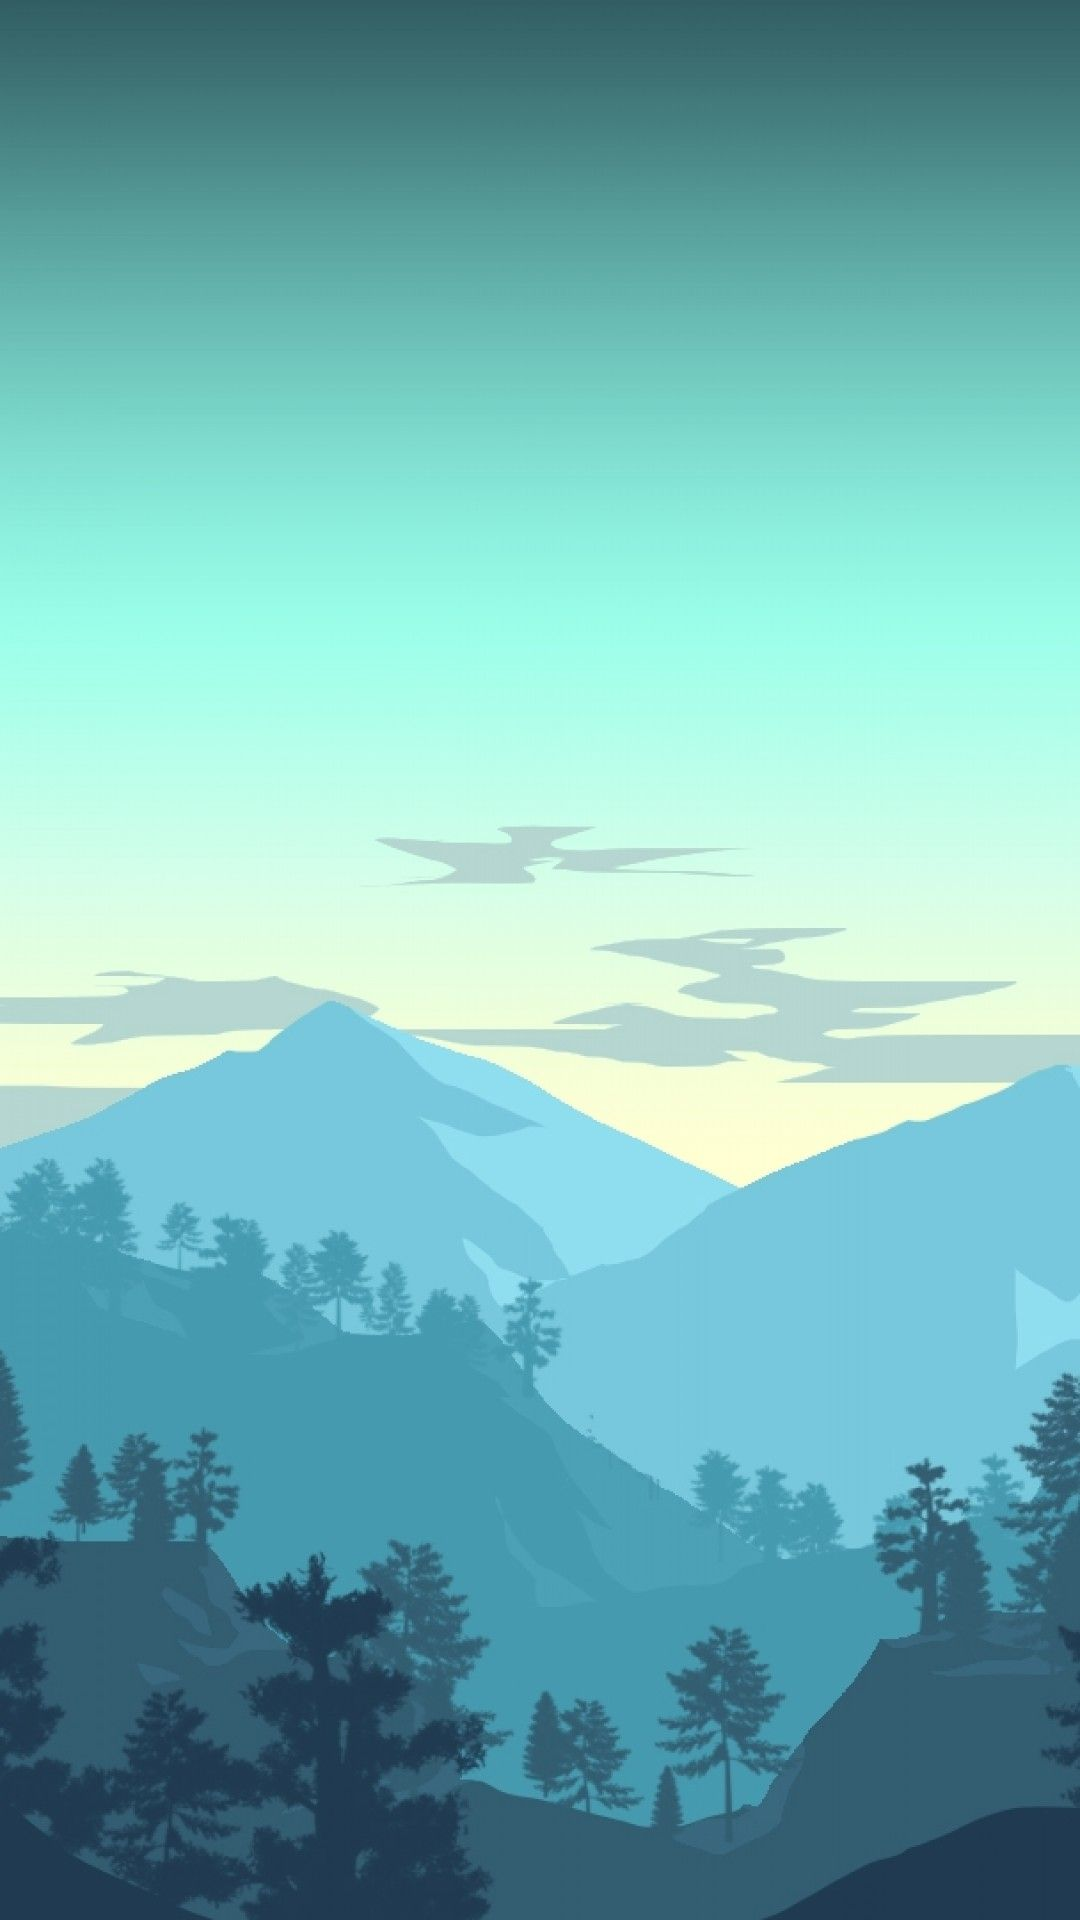 Minimalistic Landscape Mountains Forest Bird Sky Artwork In